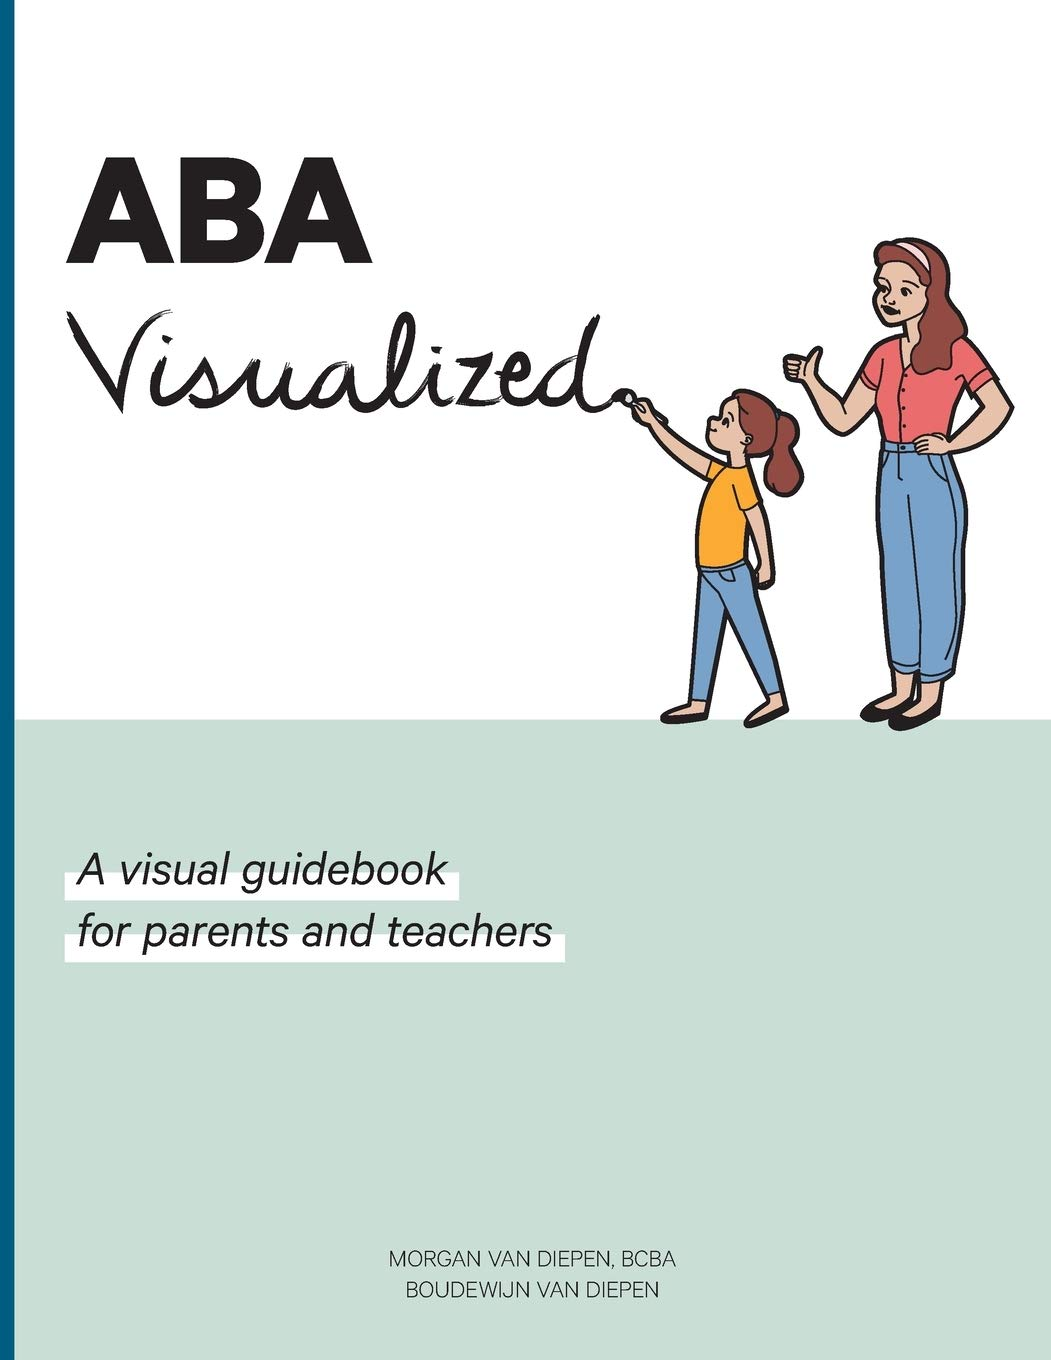 ABA Visualized: A visual guidebook for parents and teachers by Studio Van Diepen